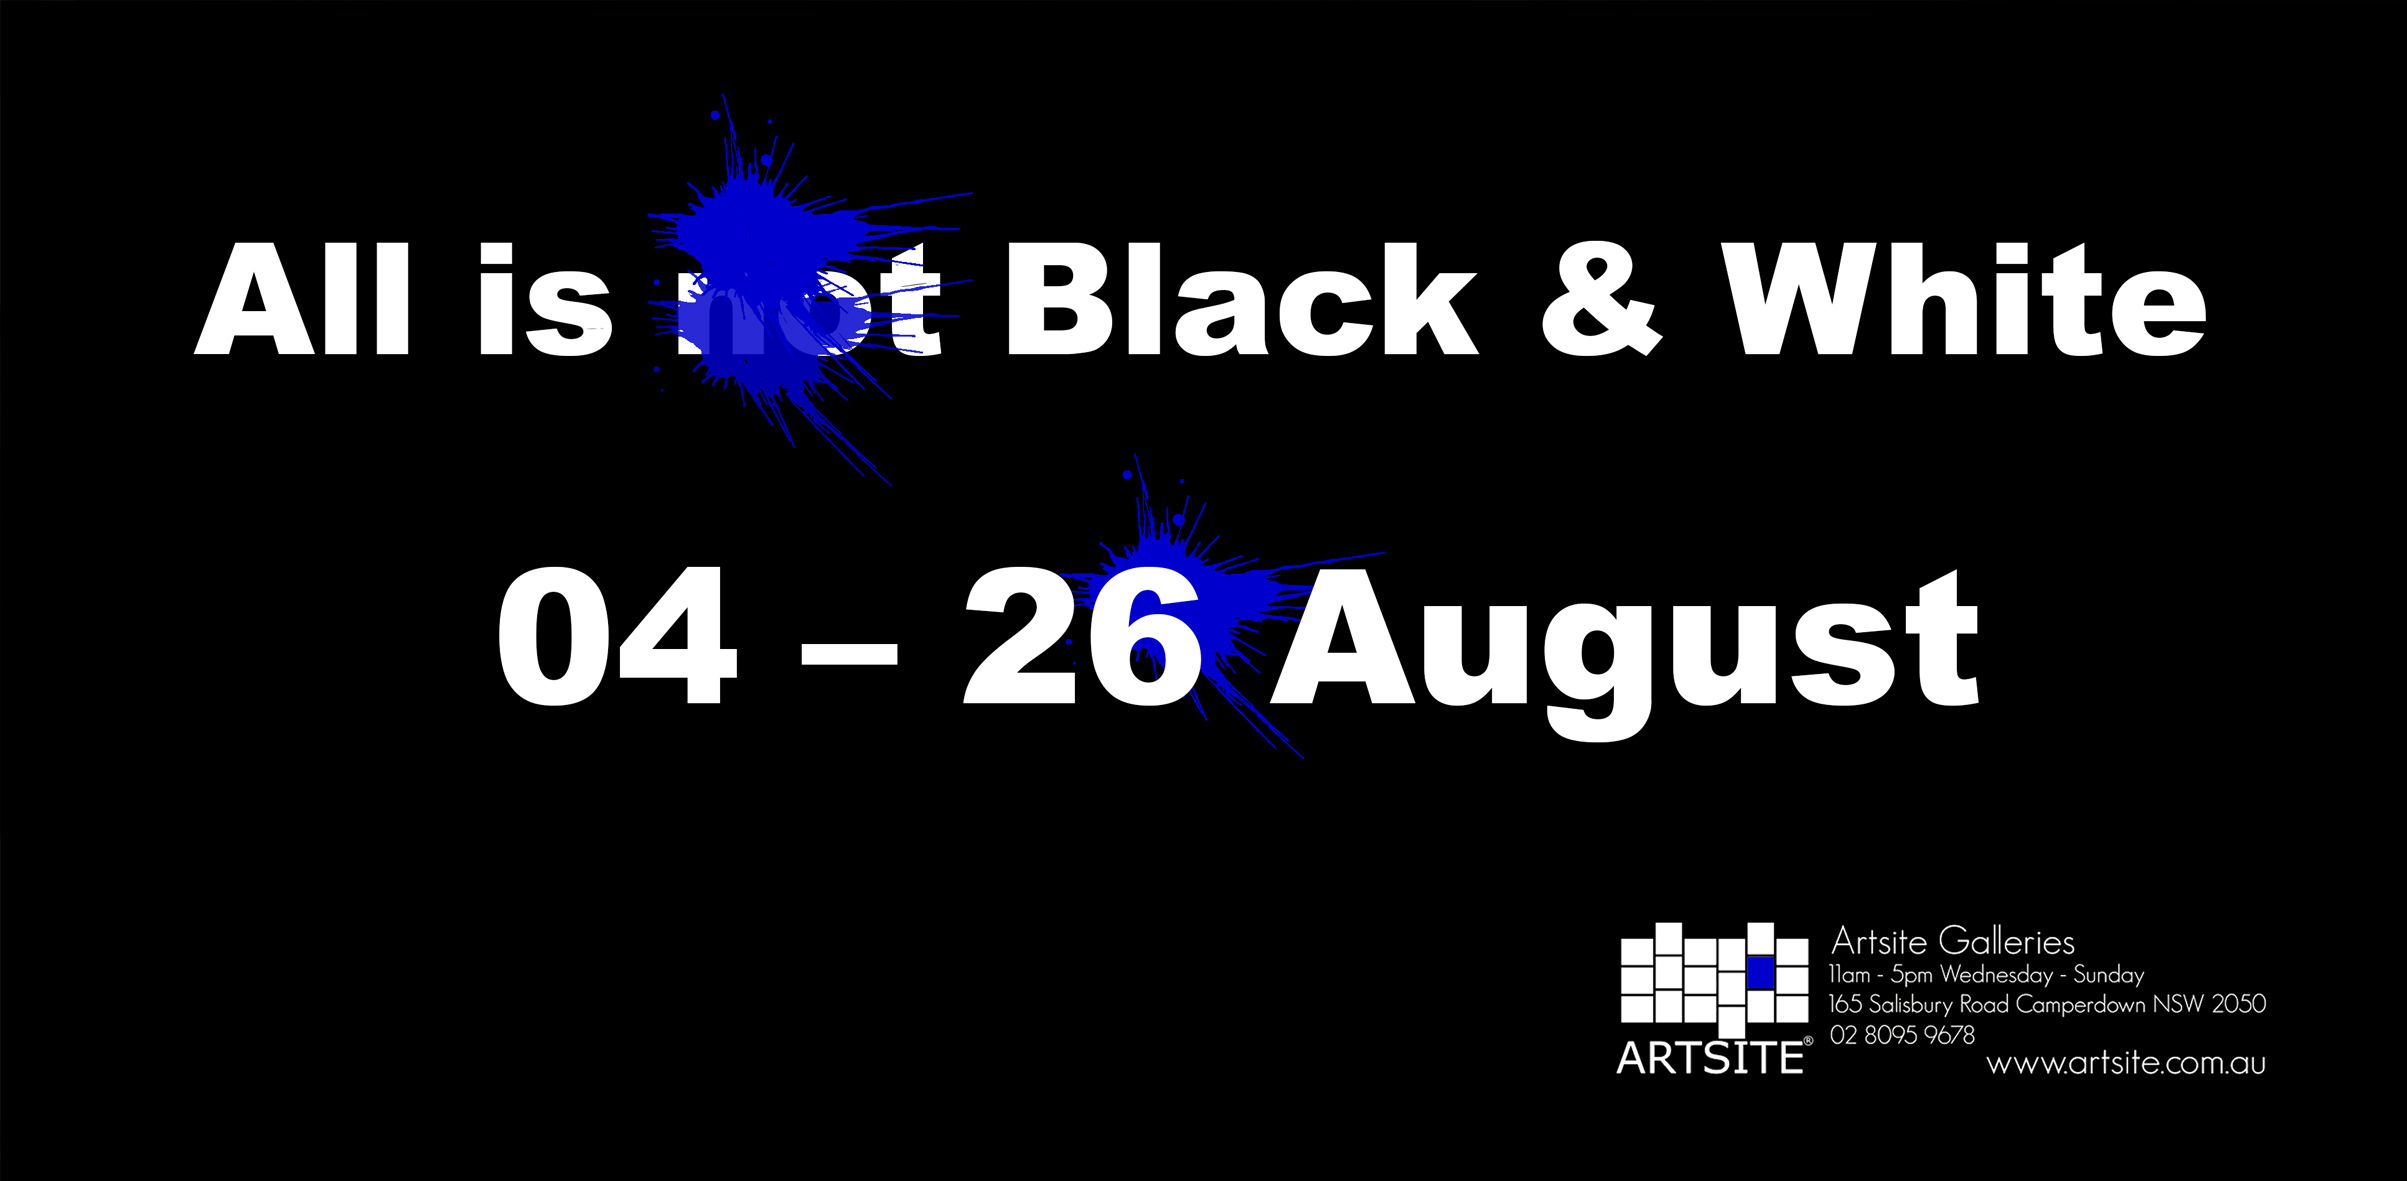 View Exhibition | Artsite Galleries, Sydney | All is (not) Black and White | Group Exhibition |  04 - 26 August 2018